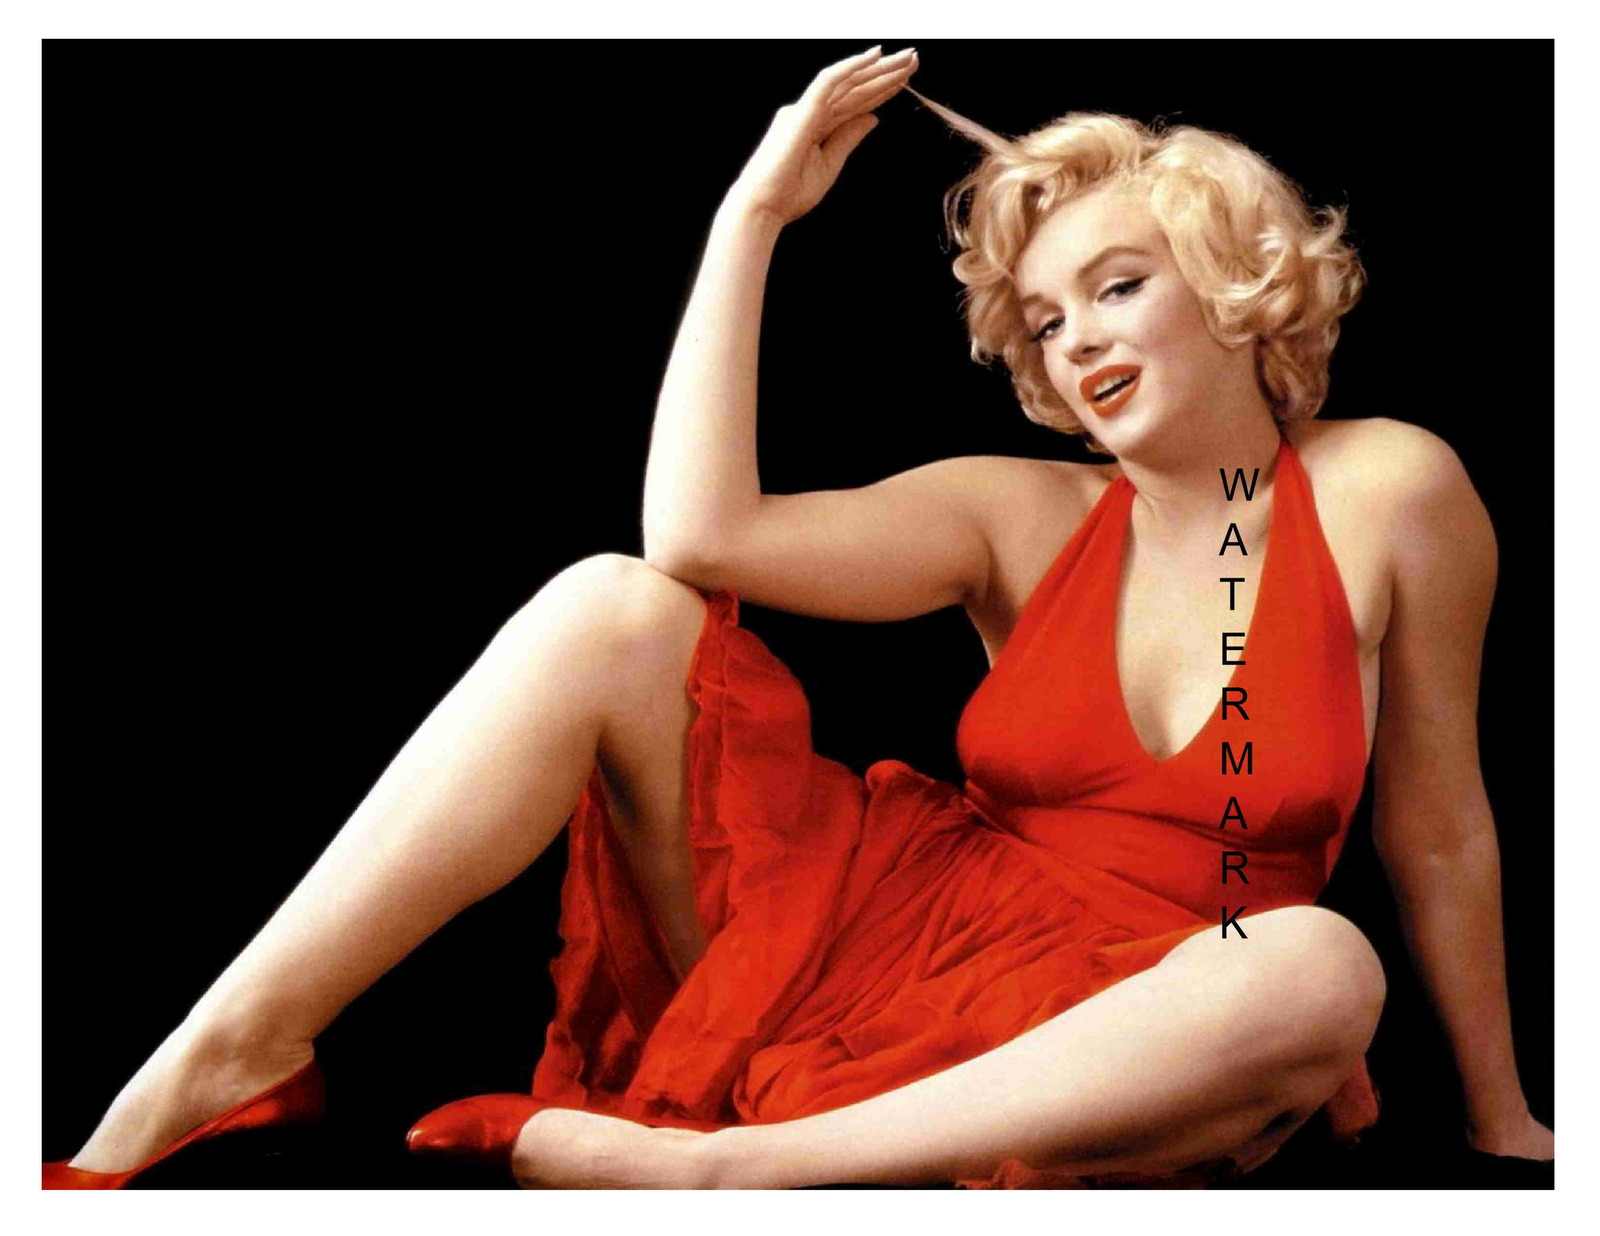 Polly marilyn monroe in red